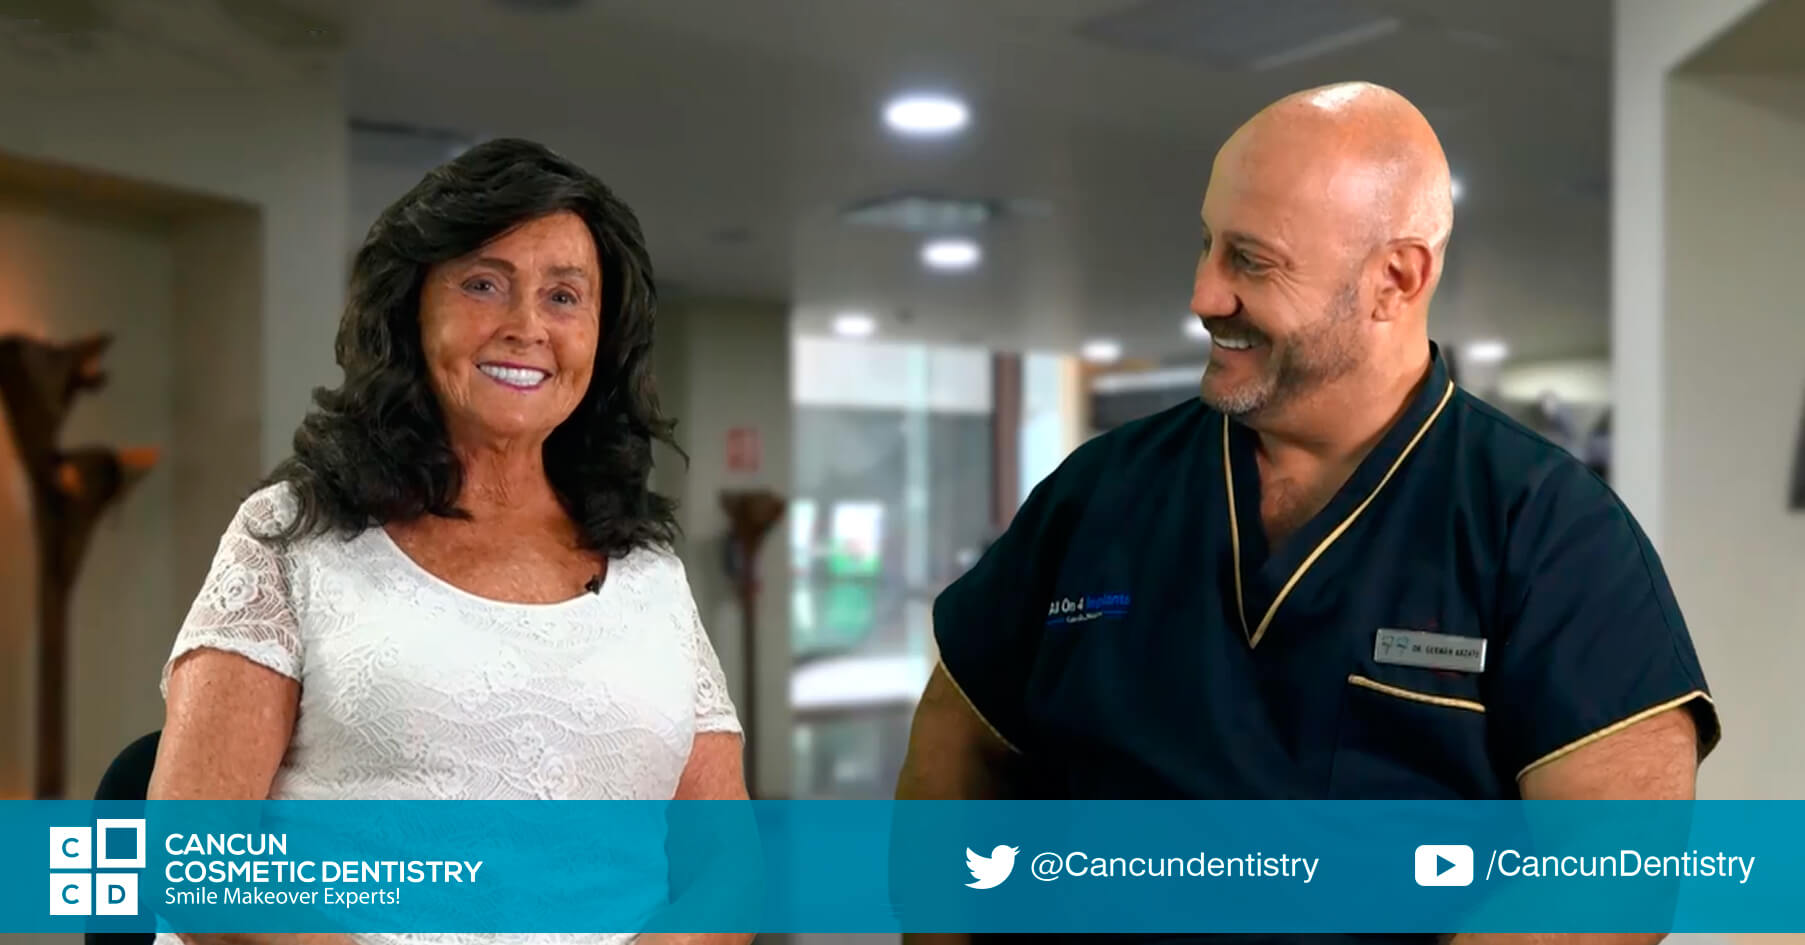 She feels better about herself - Cancun Cosmetic Dentistry Review